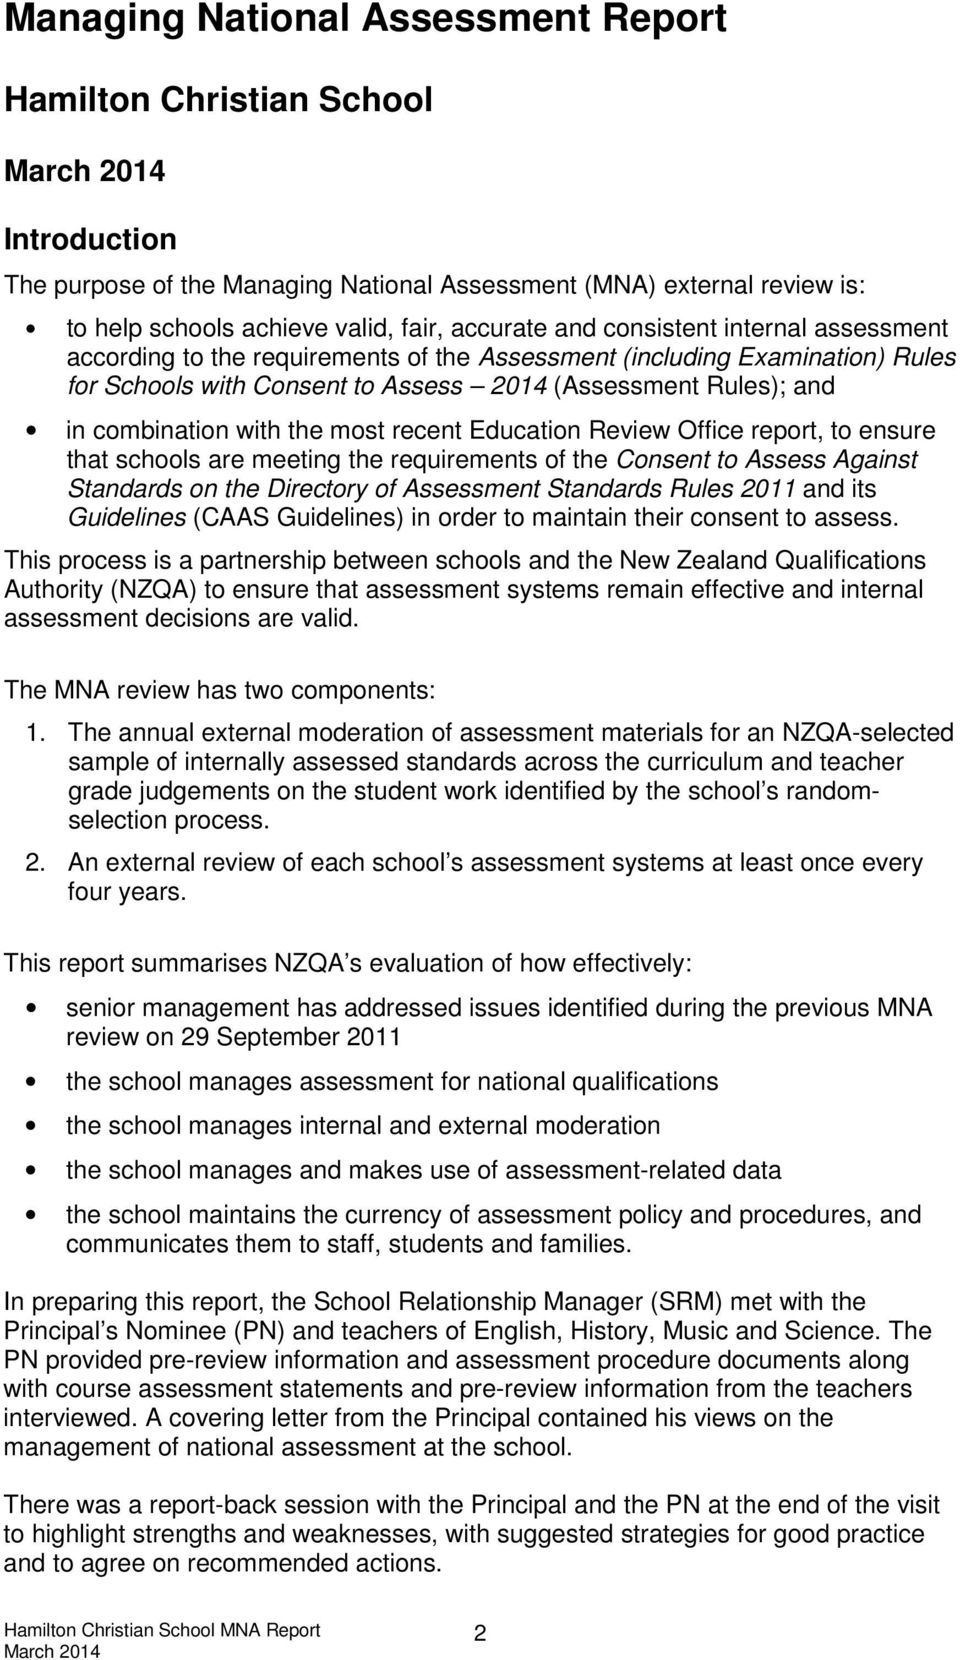 most recent Education Review Office report, to ensure that schools are meeting the requirements of the Consent to Assess Against Standards on the Directory of Assessment Standards Rules 2011 and its